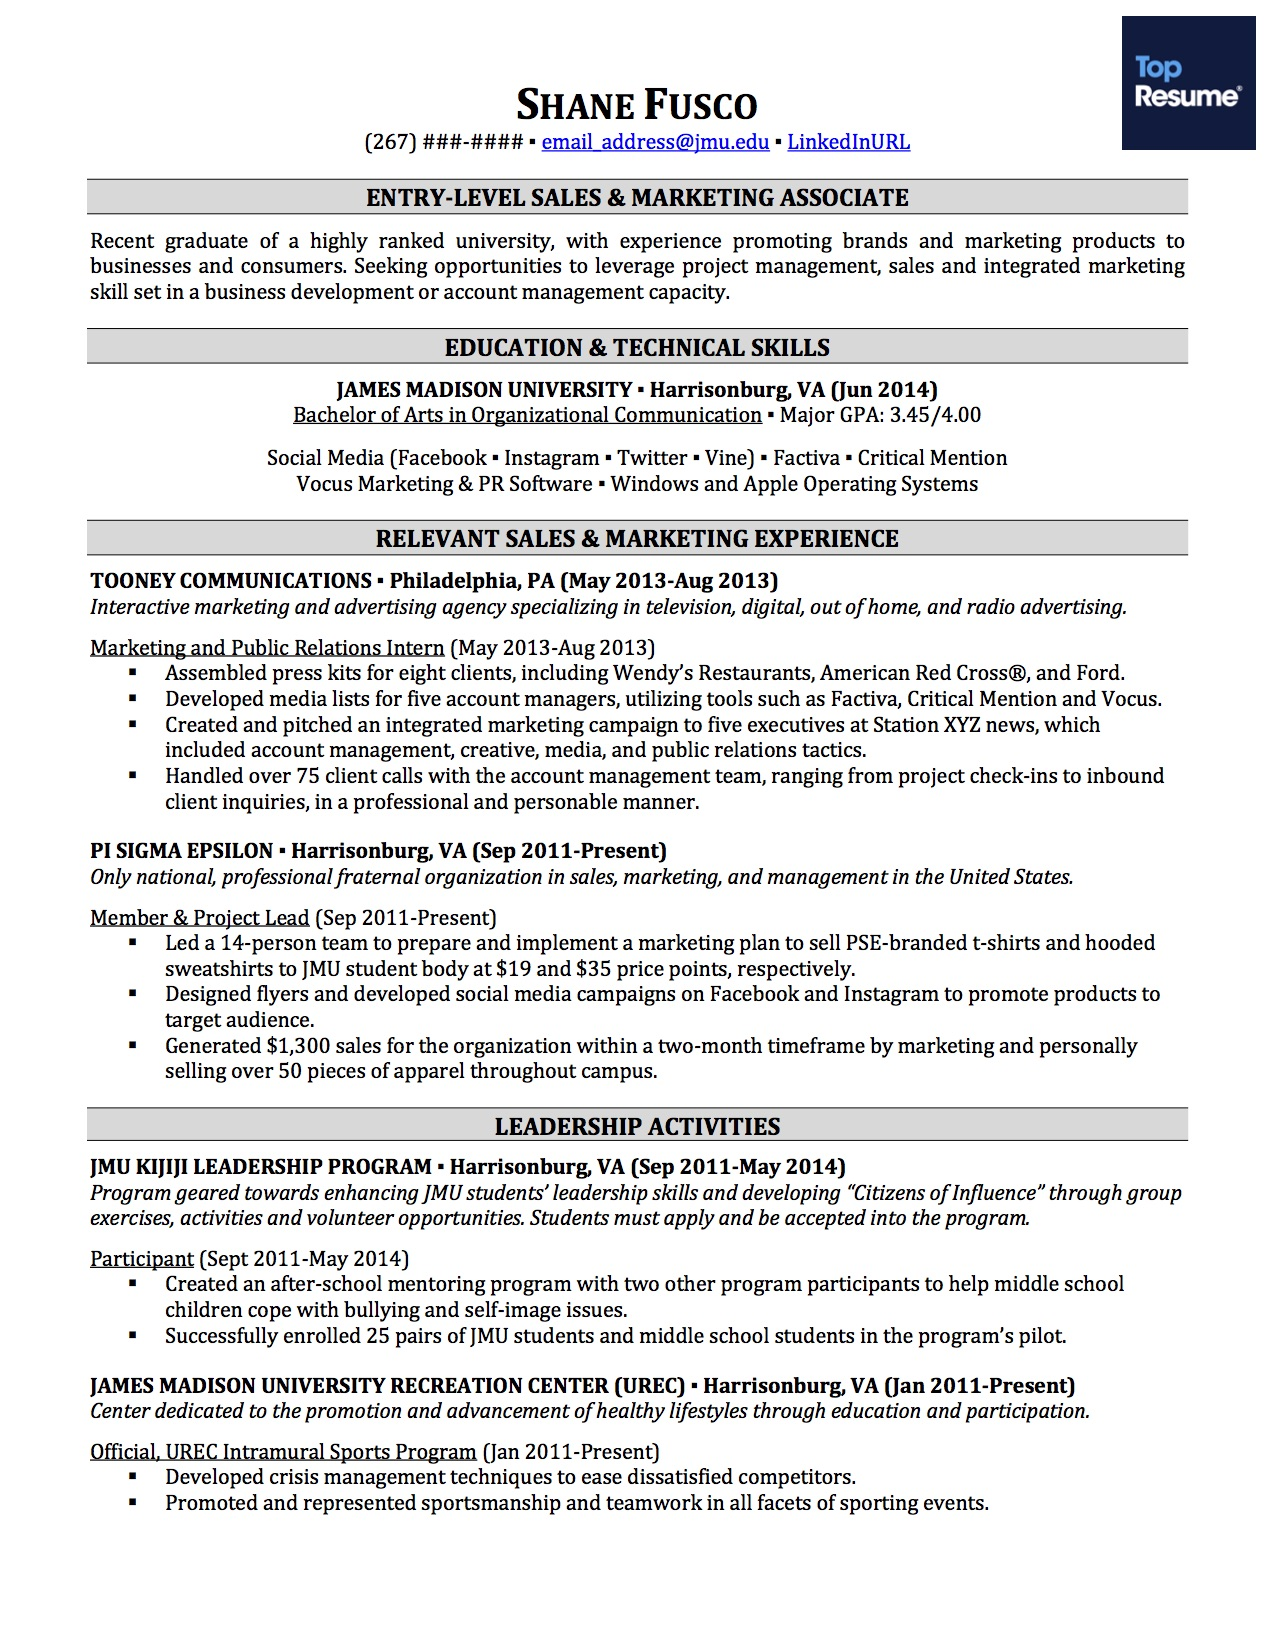 How To Write Resume With No Job Experience How To Write A Resume With No Job Experience Topresume